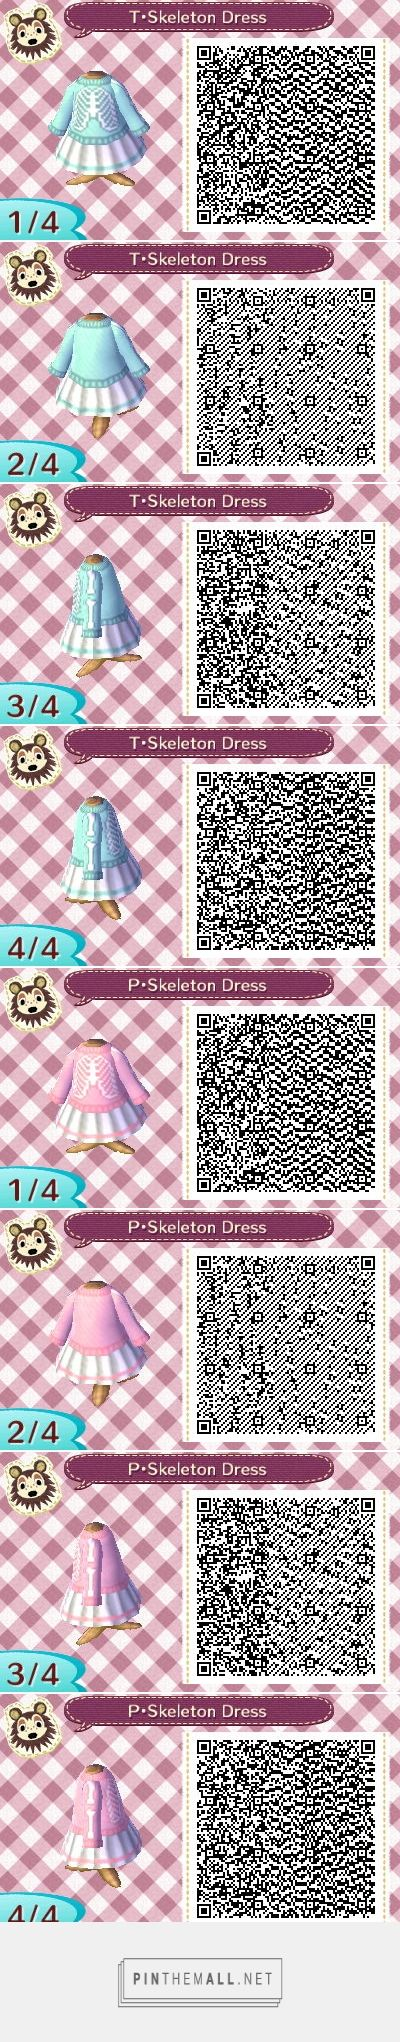 Black dress qr code - Find This Pin And More On Acnl Dresses Qr Codes